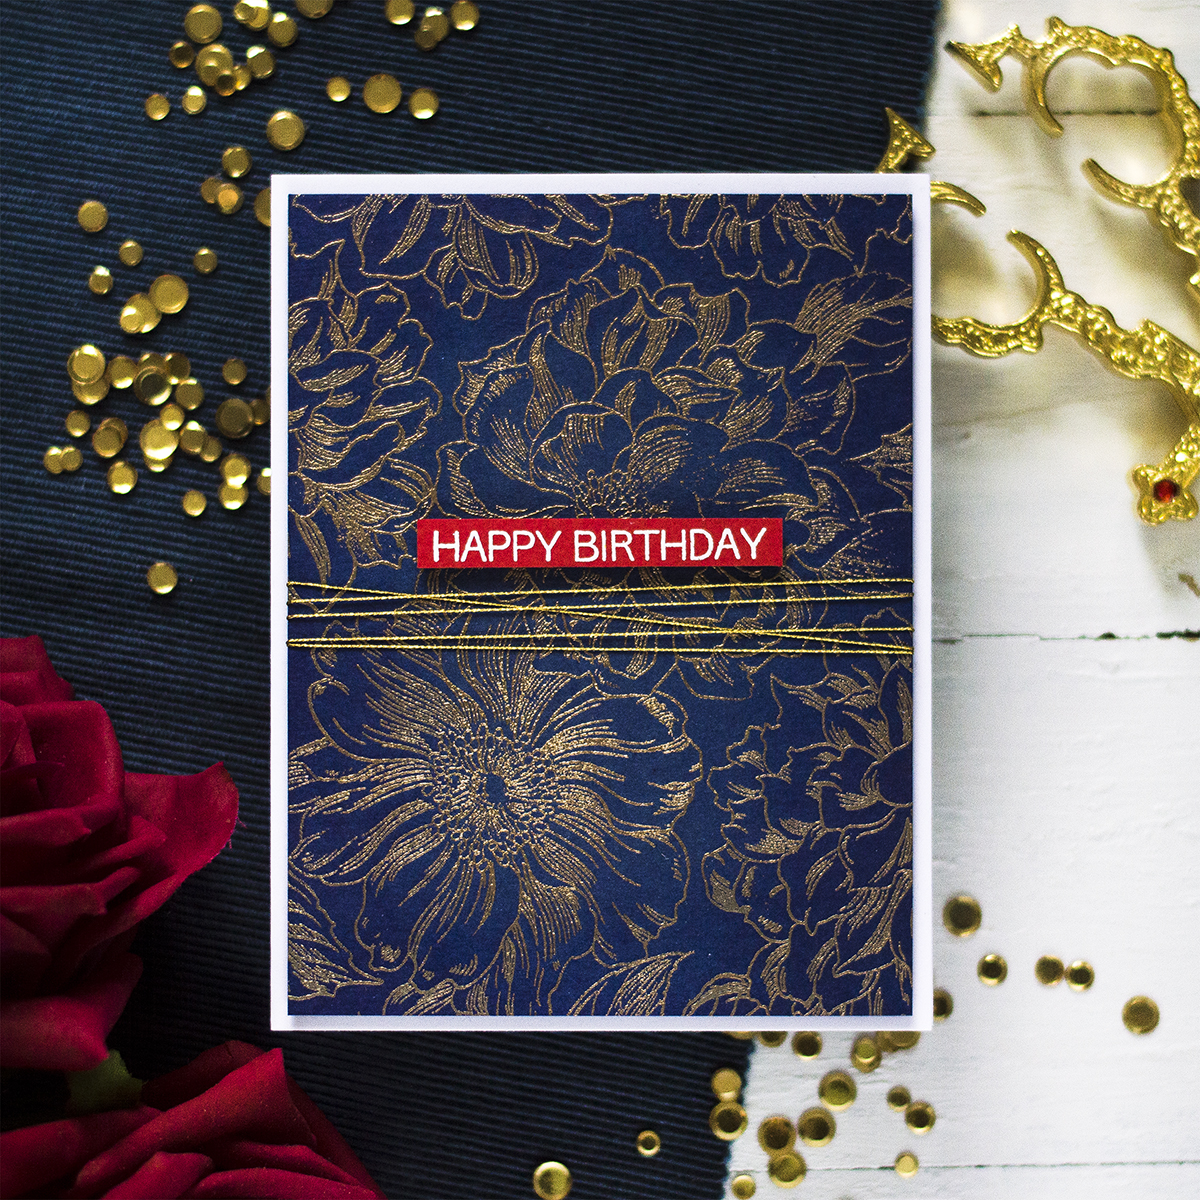 Bold Gold Embossed Background. Card by Svitlana Shayevich